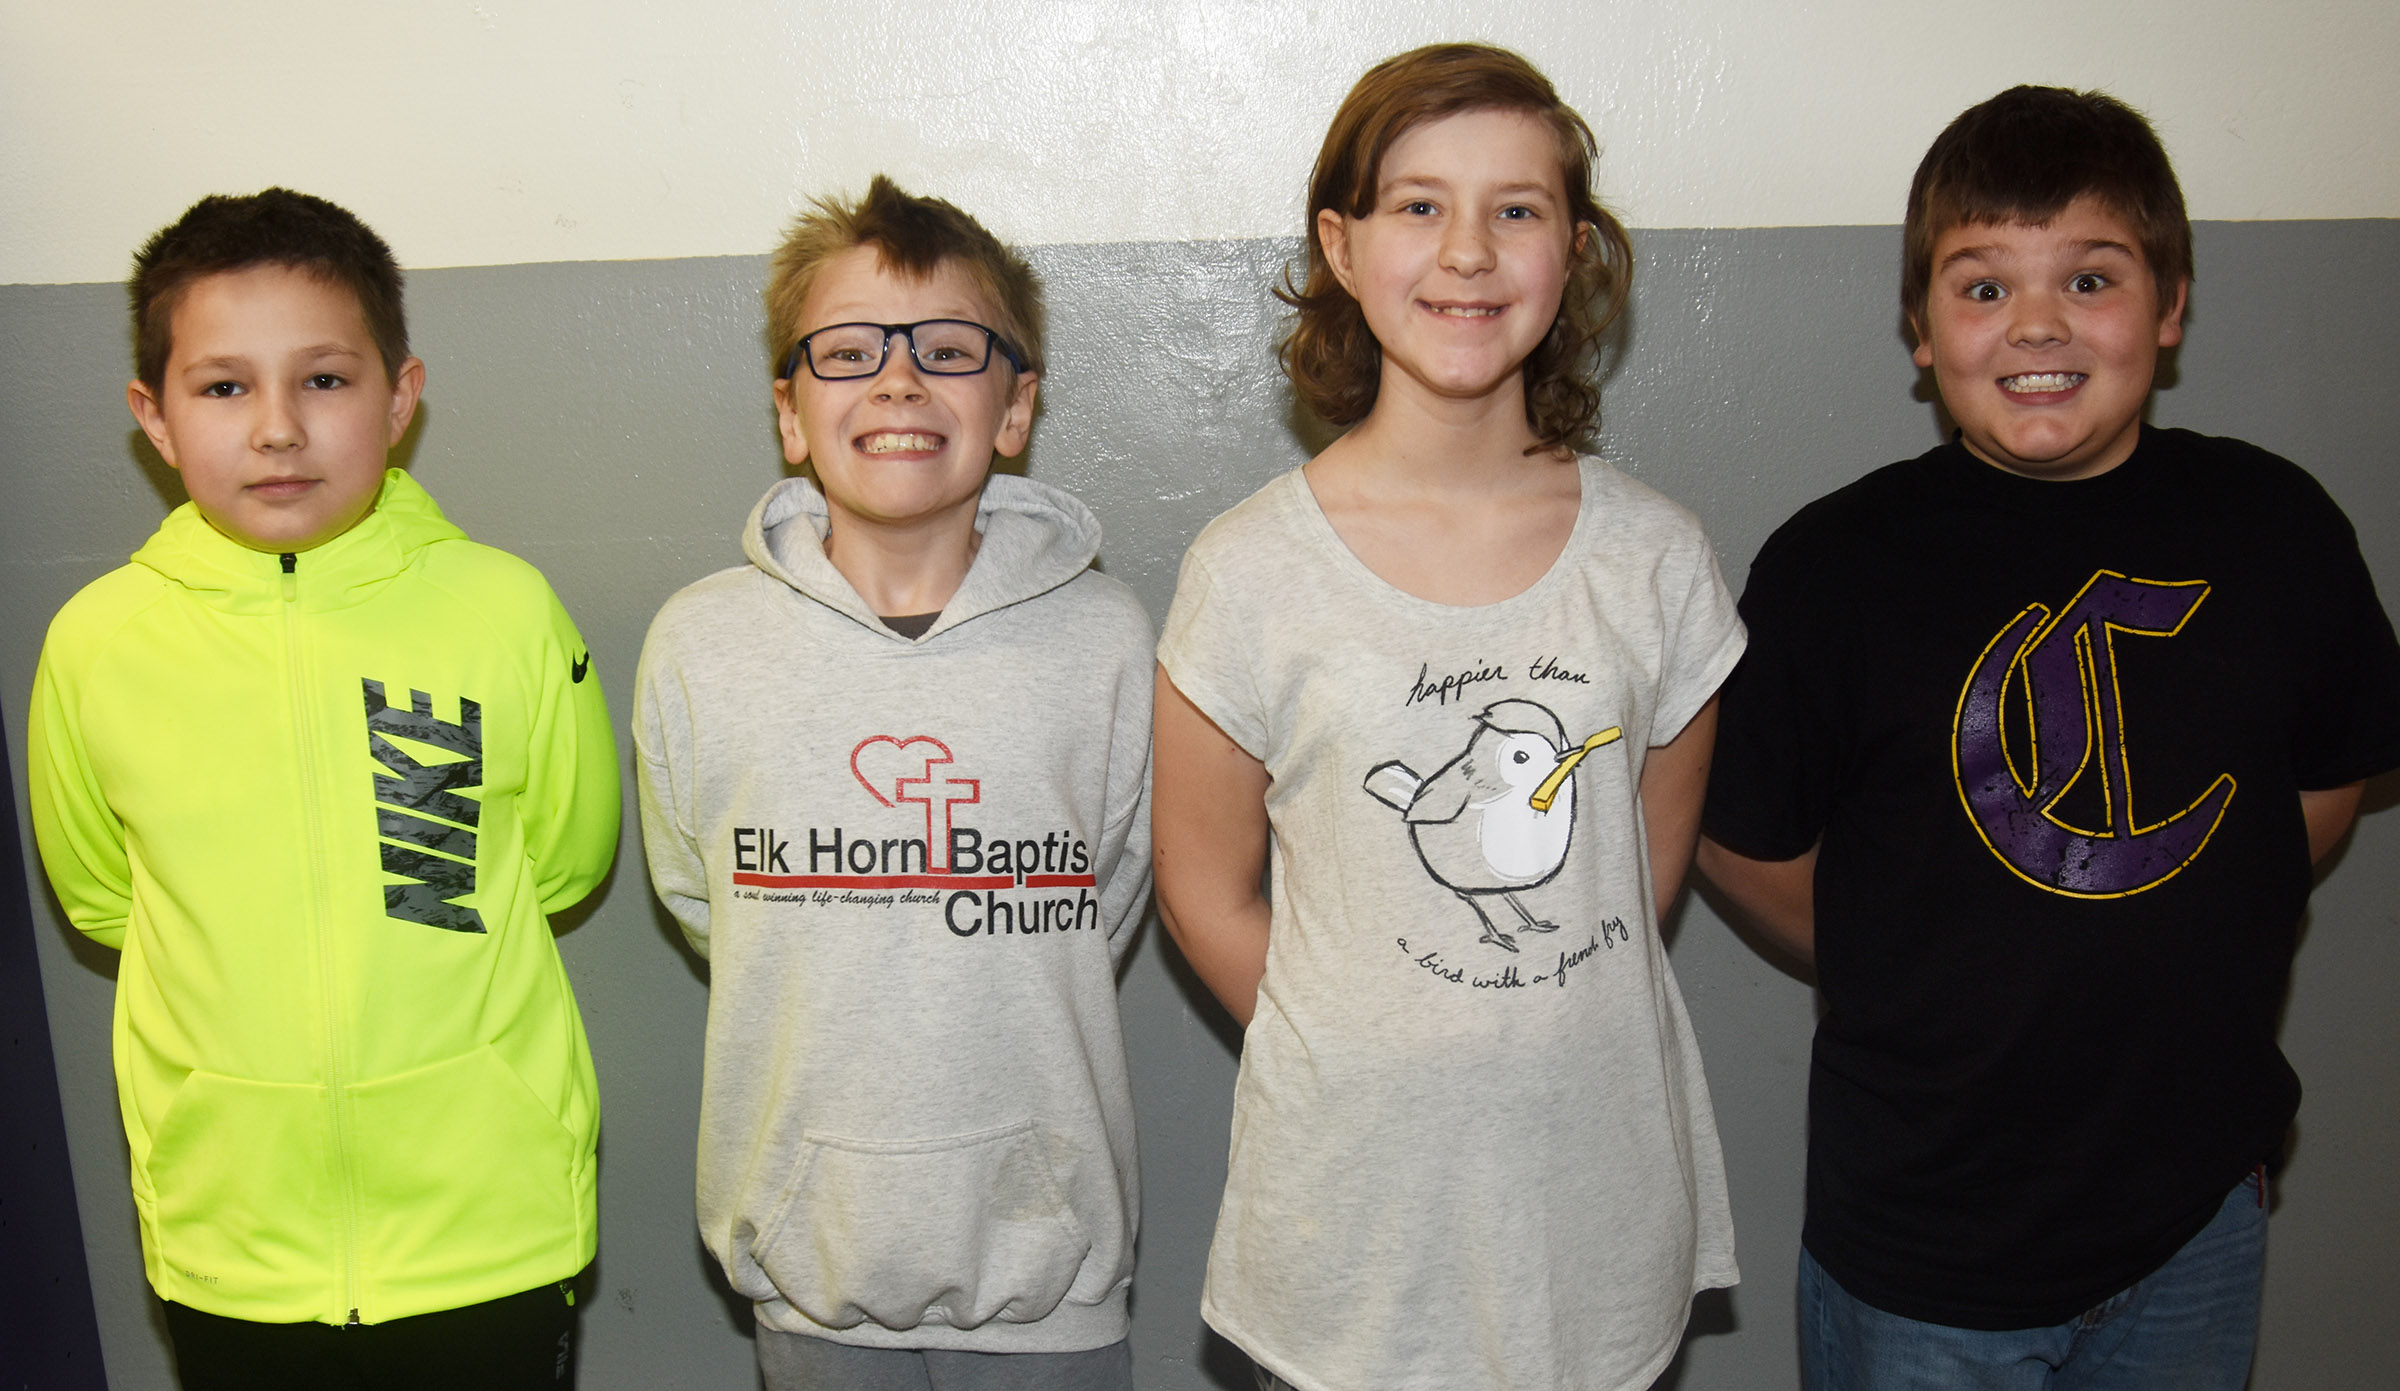 CES future problem solving students won third place at Region Governor's Cup competition. They are, from left, fourth-graders Grayson Dooley and Connor Coots and fifth-graders Bryanna Fitzgerald and Logan England.